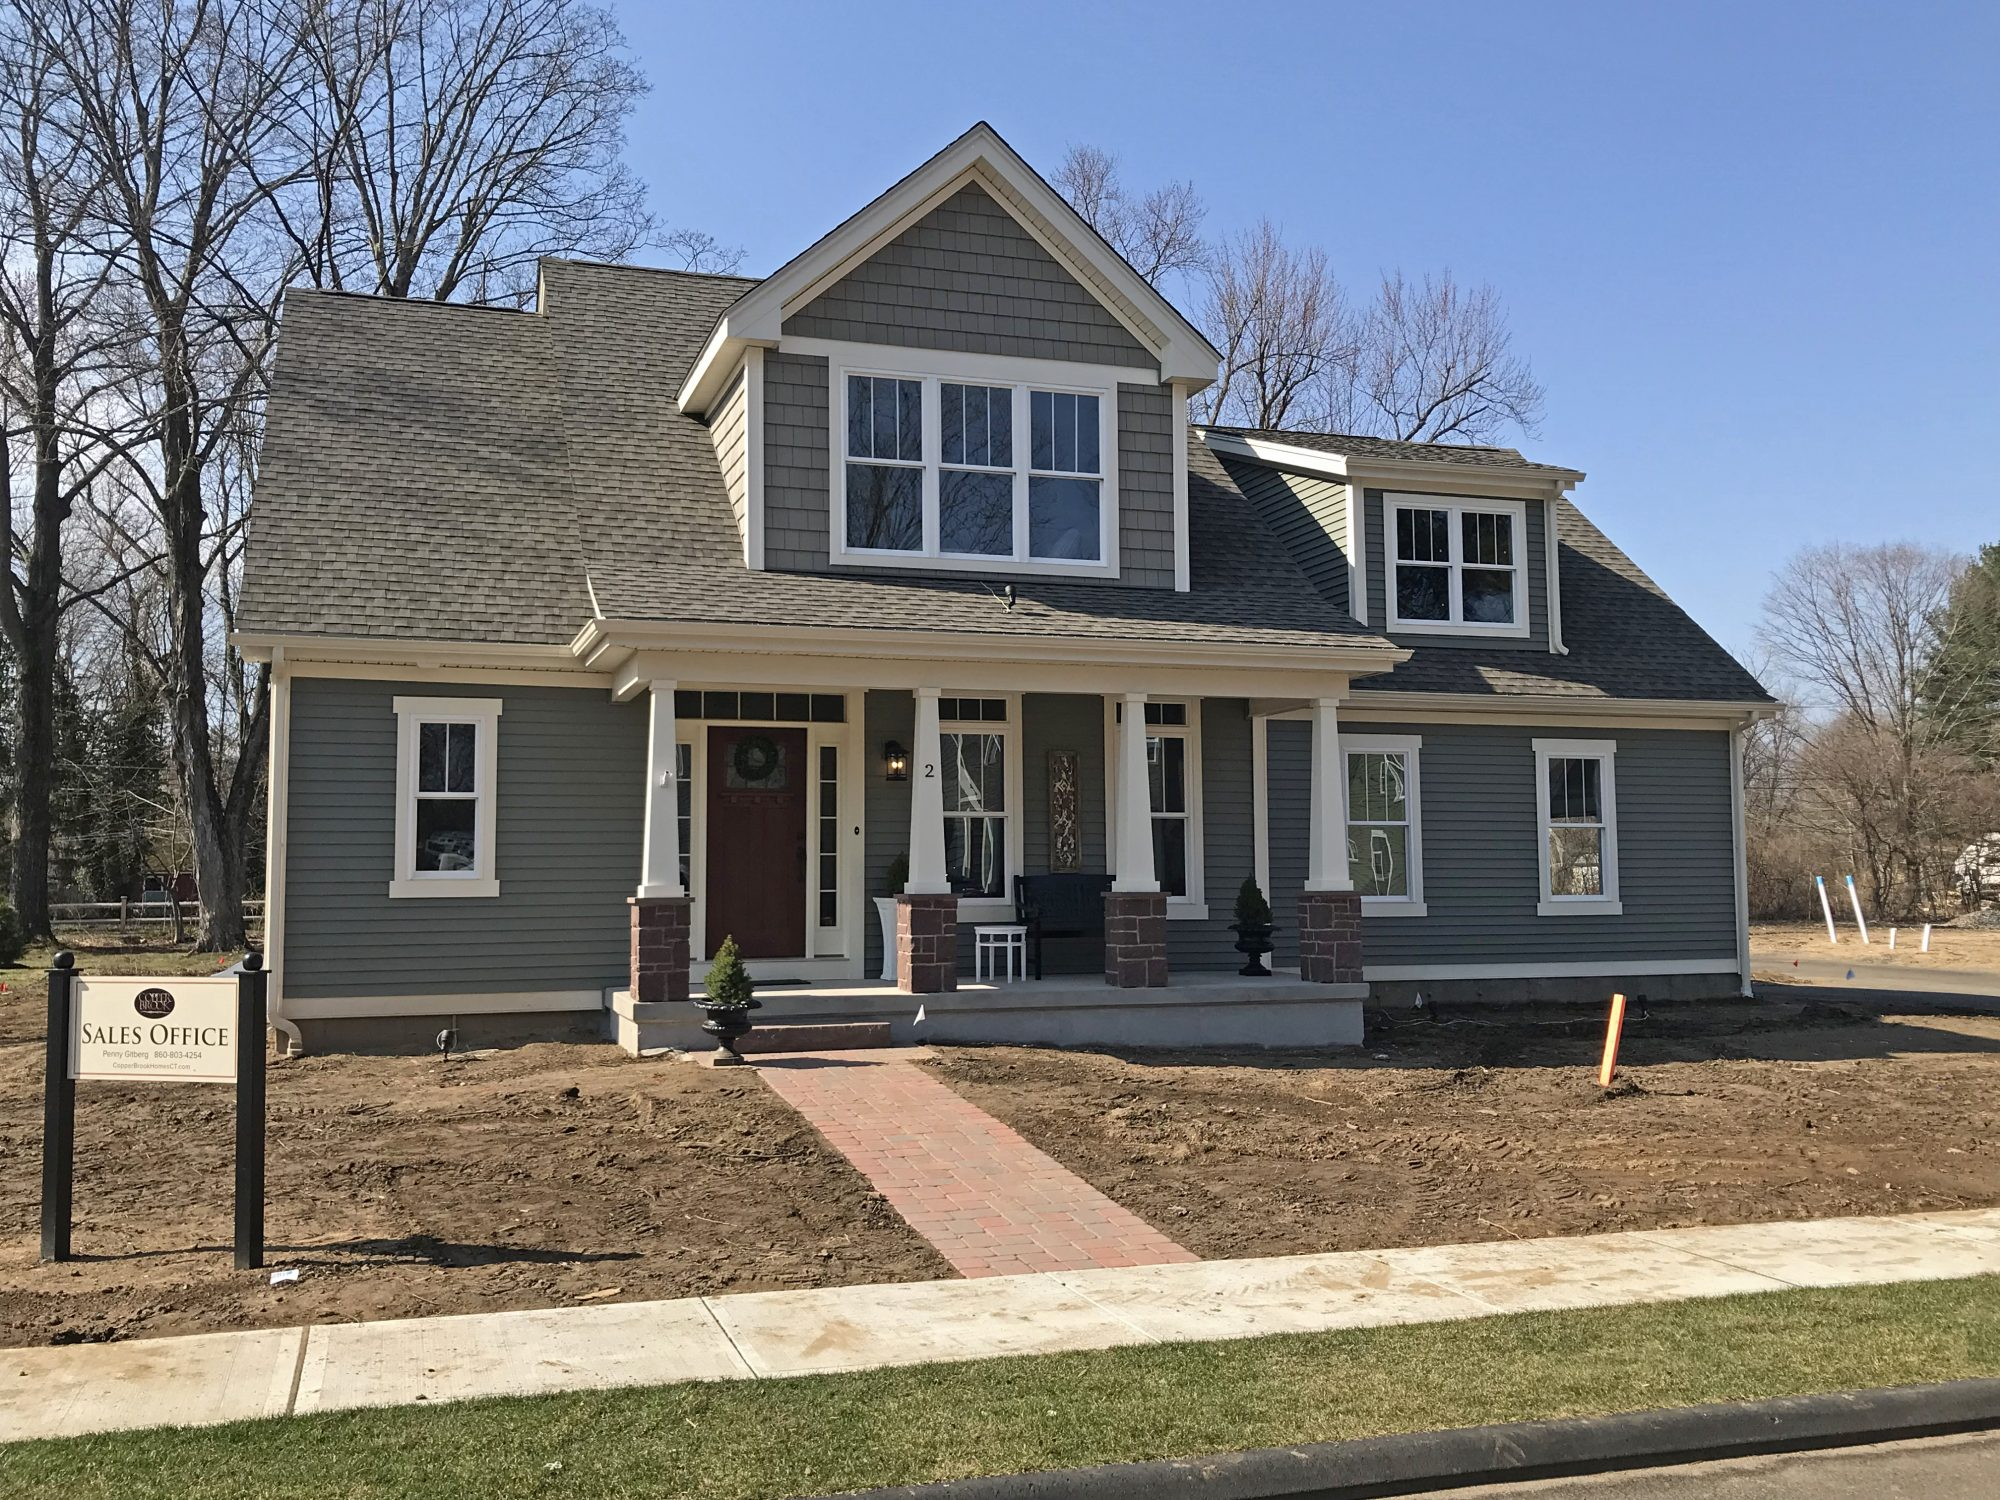 New Model Home at Copperbrook development in Granby, CT